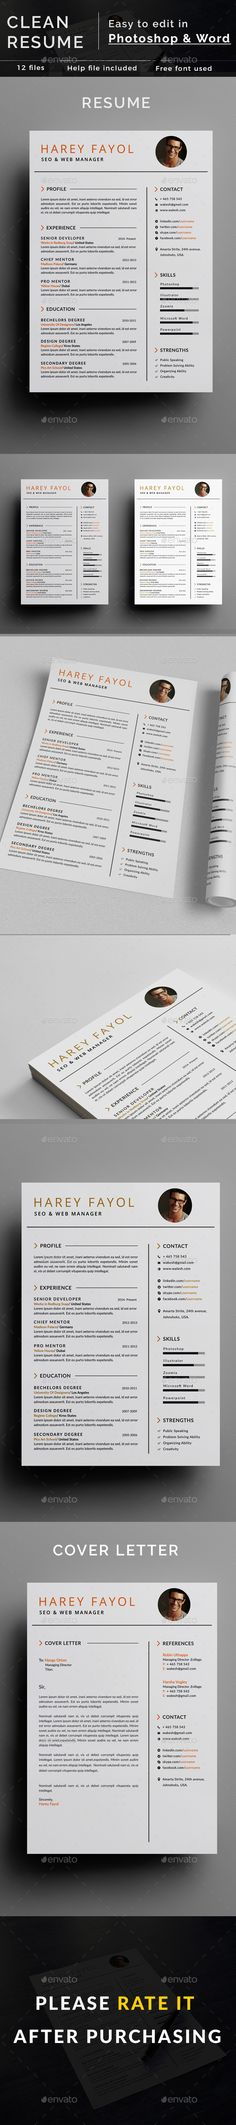 Resume Template Resume cv and